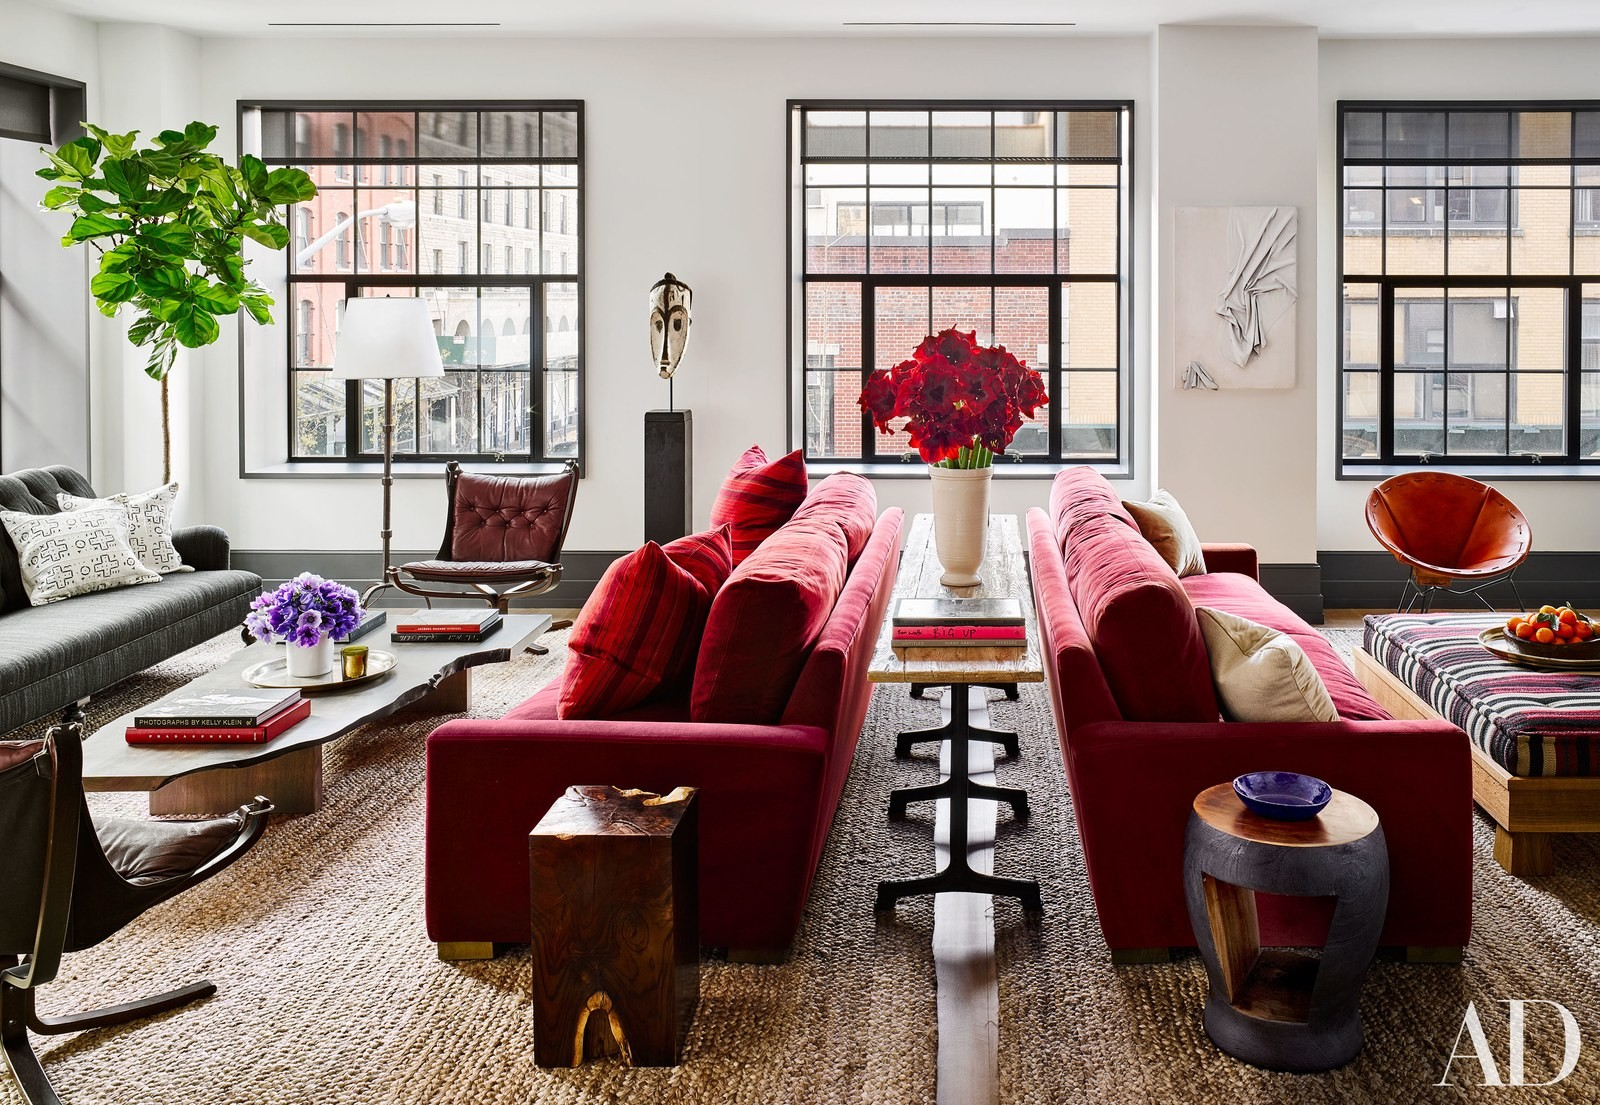 Naomi Watts and Liev Schreiber's Home in New York City 2